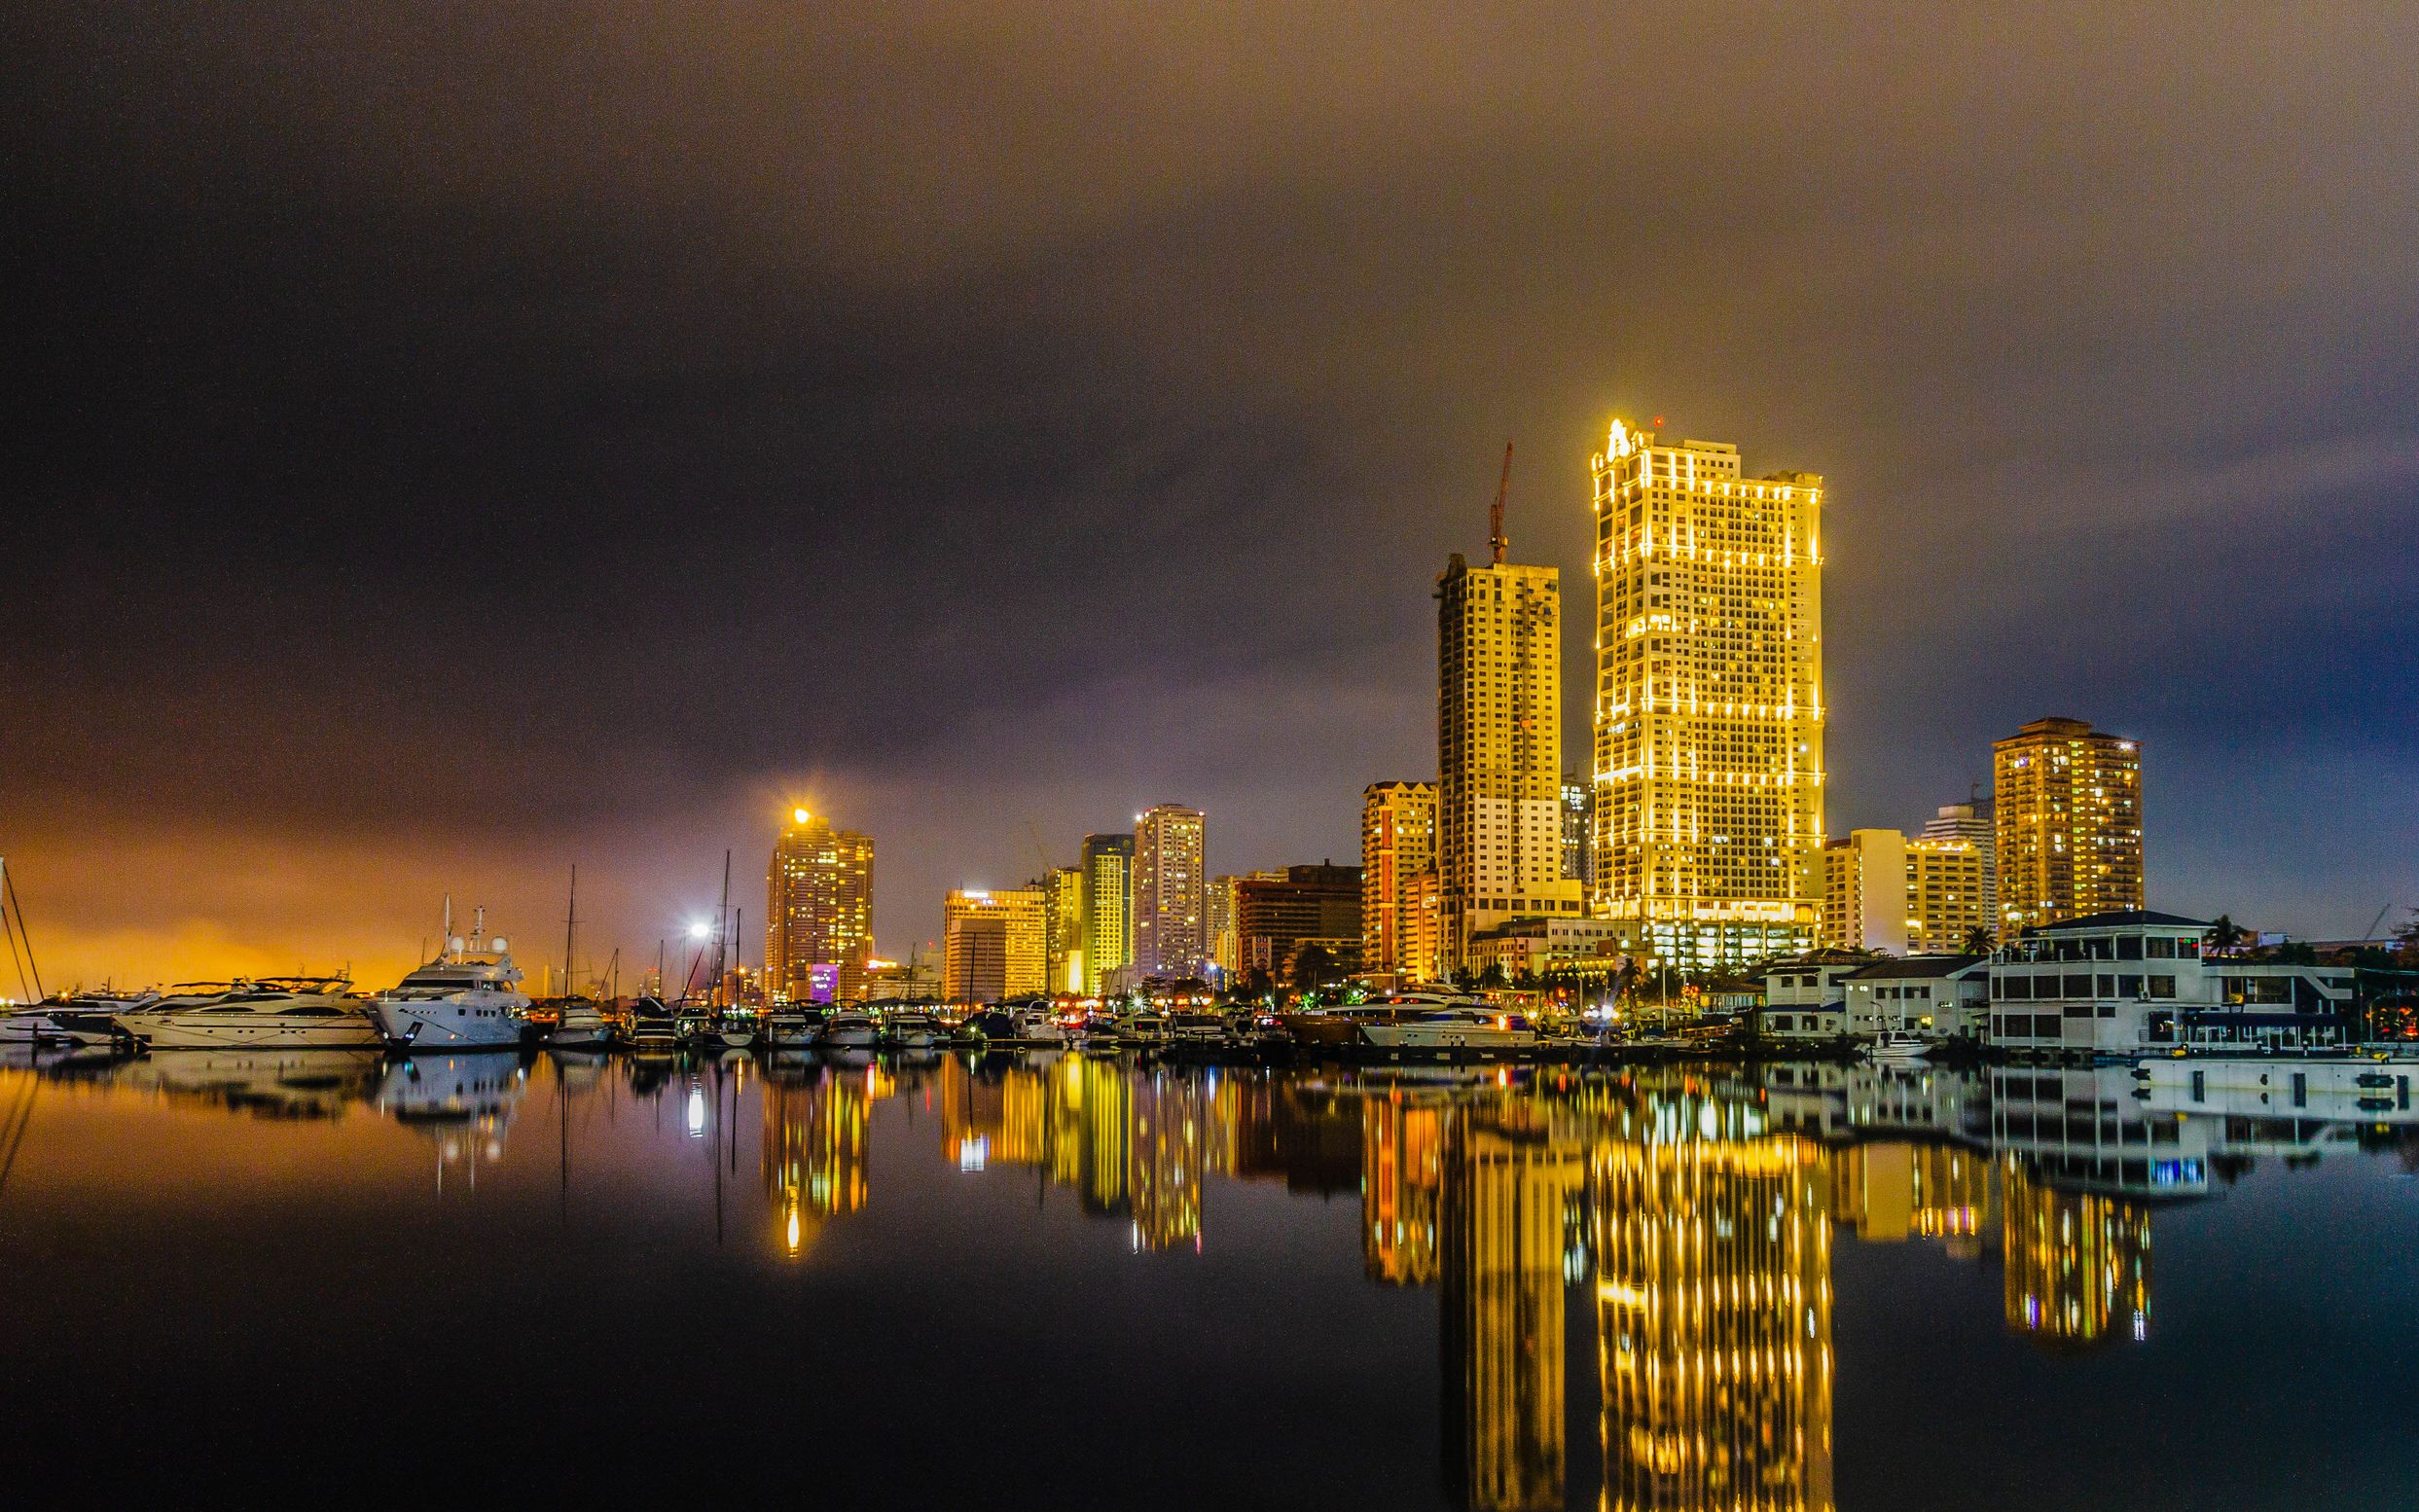 Skyline of Metro Manila at night reflected on water